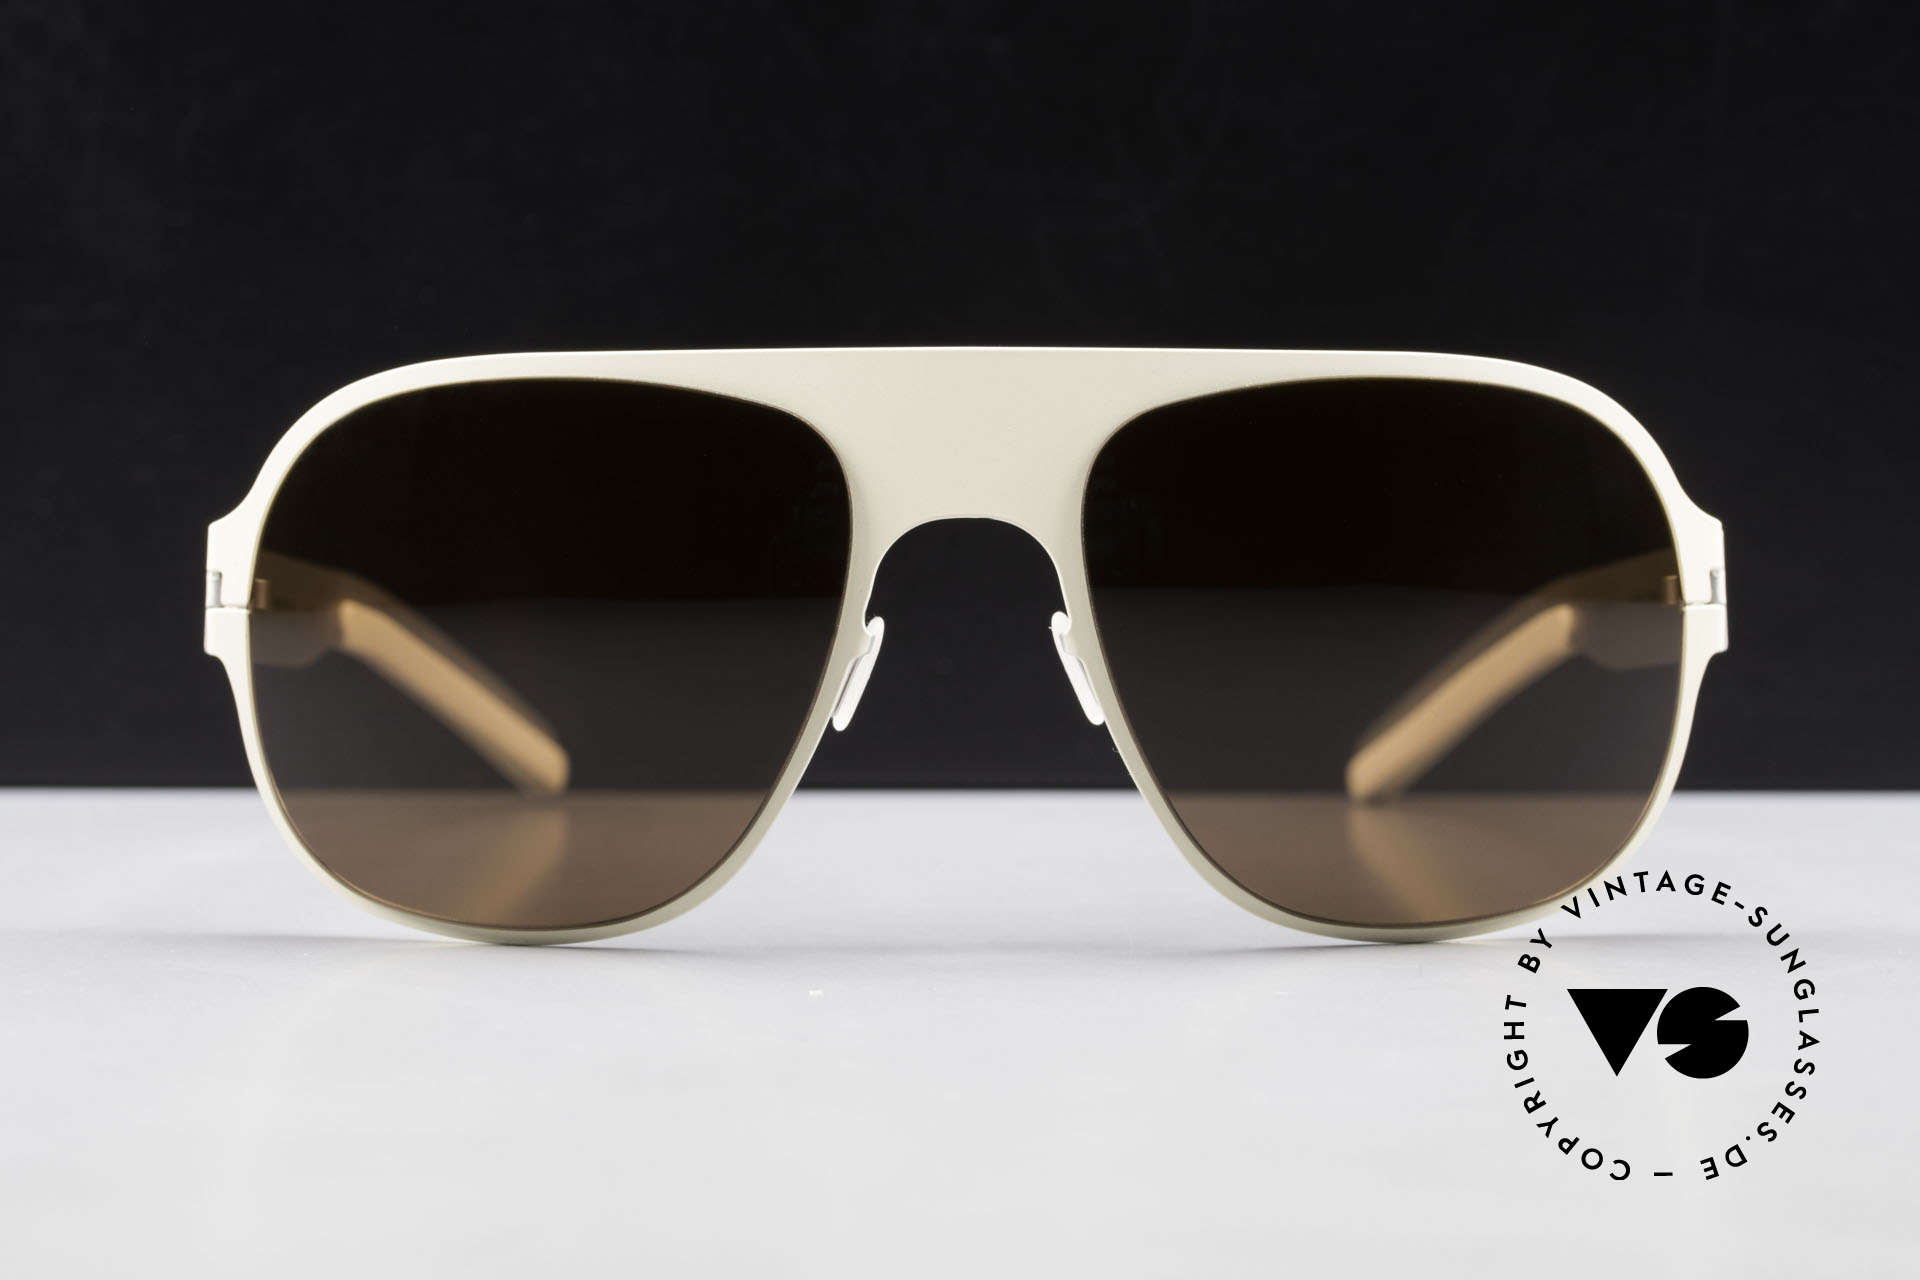 Mykita Rodney Limited Designer Sunglasses, innovative and flexible metal frame = One size fits all!, Made for Men